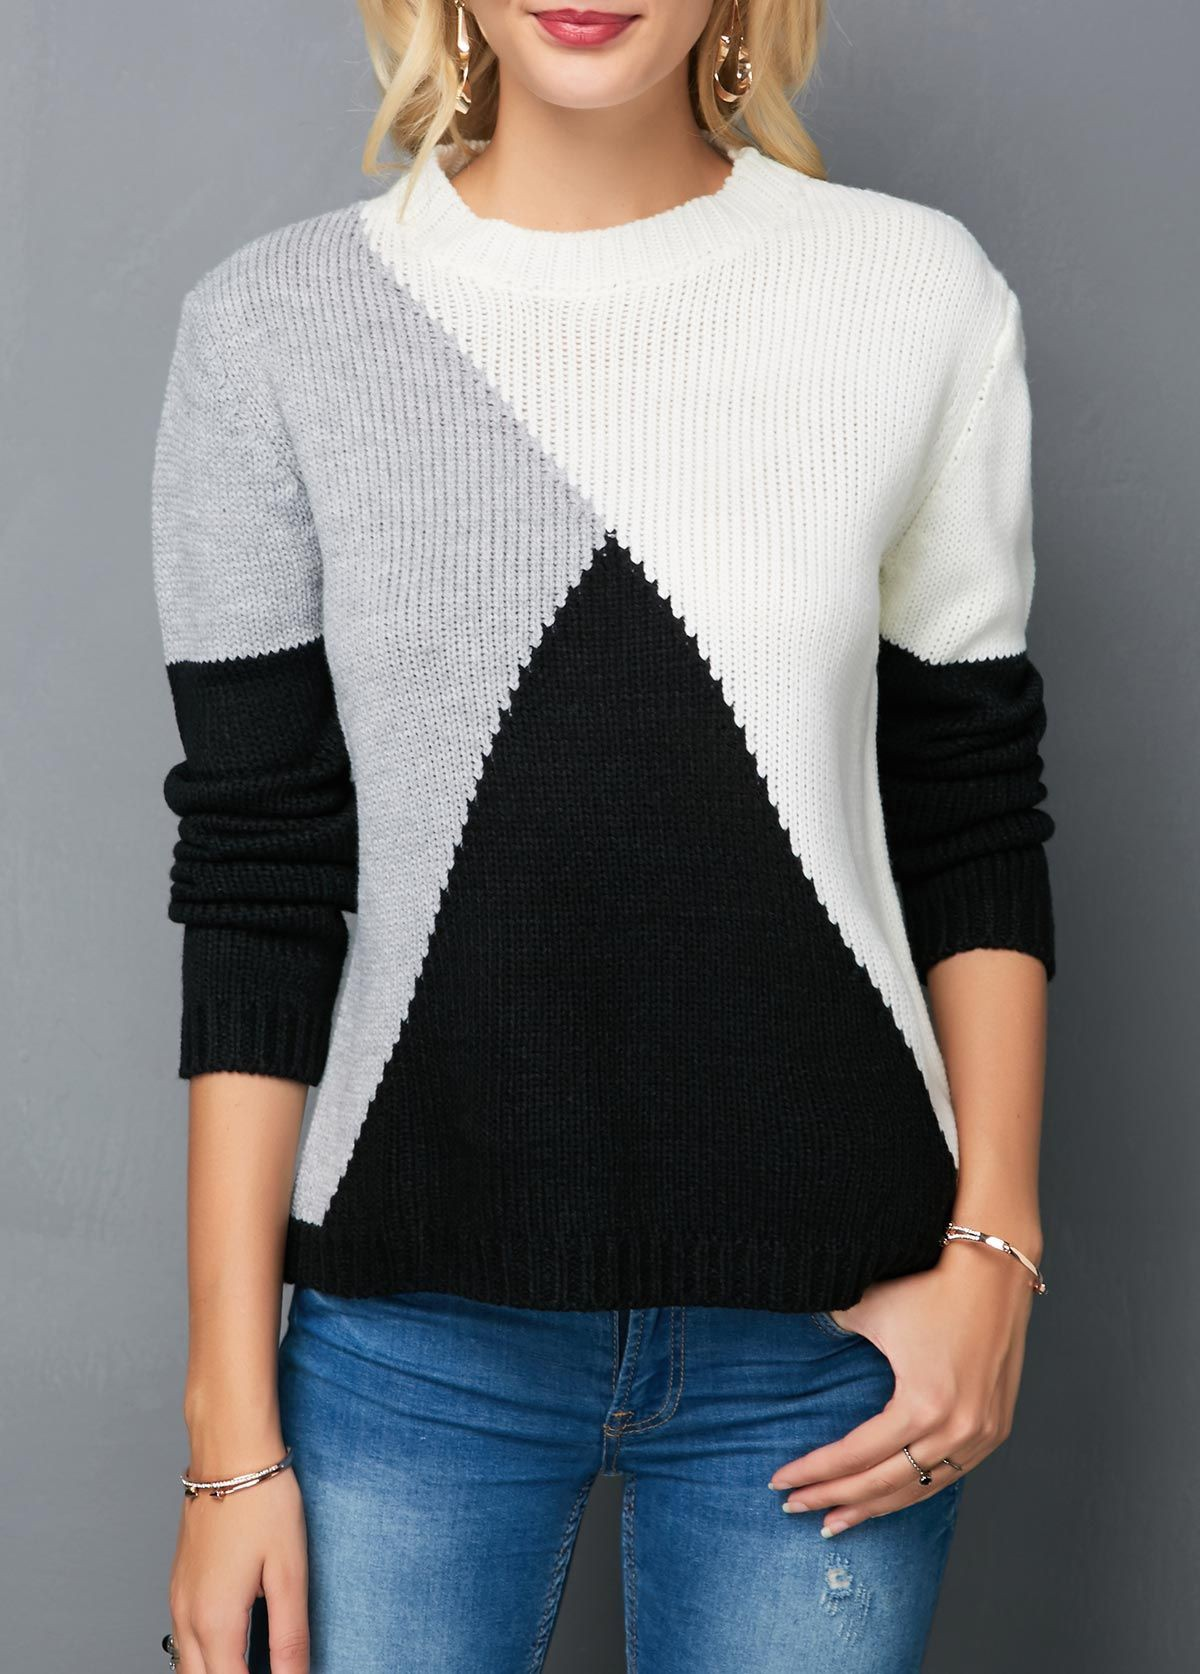 Black and white Color Block Sweaters